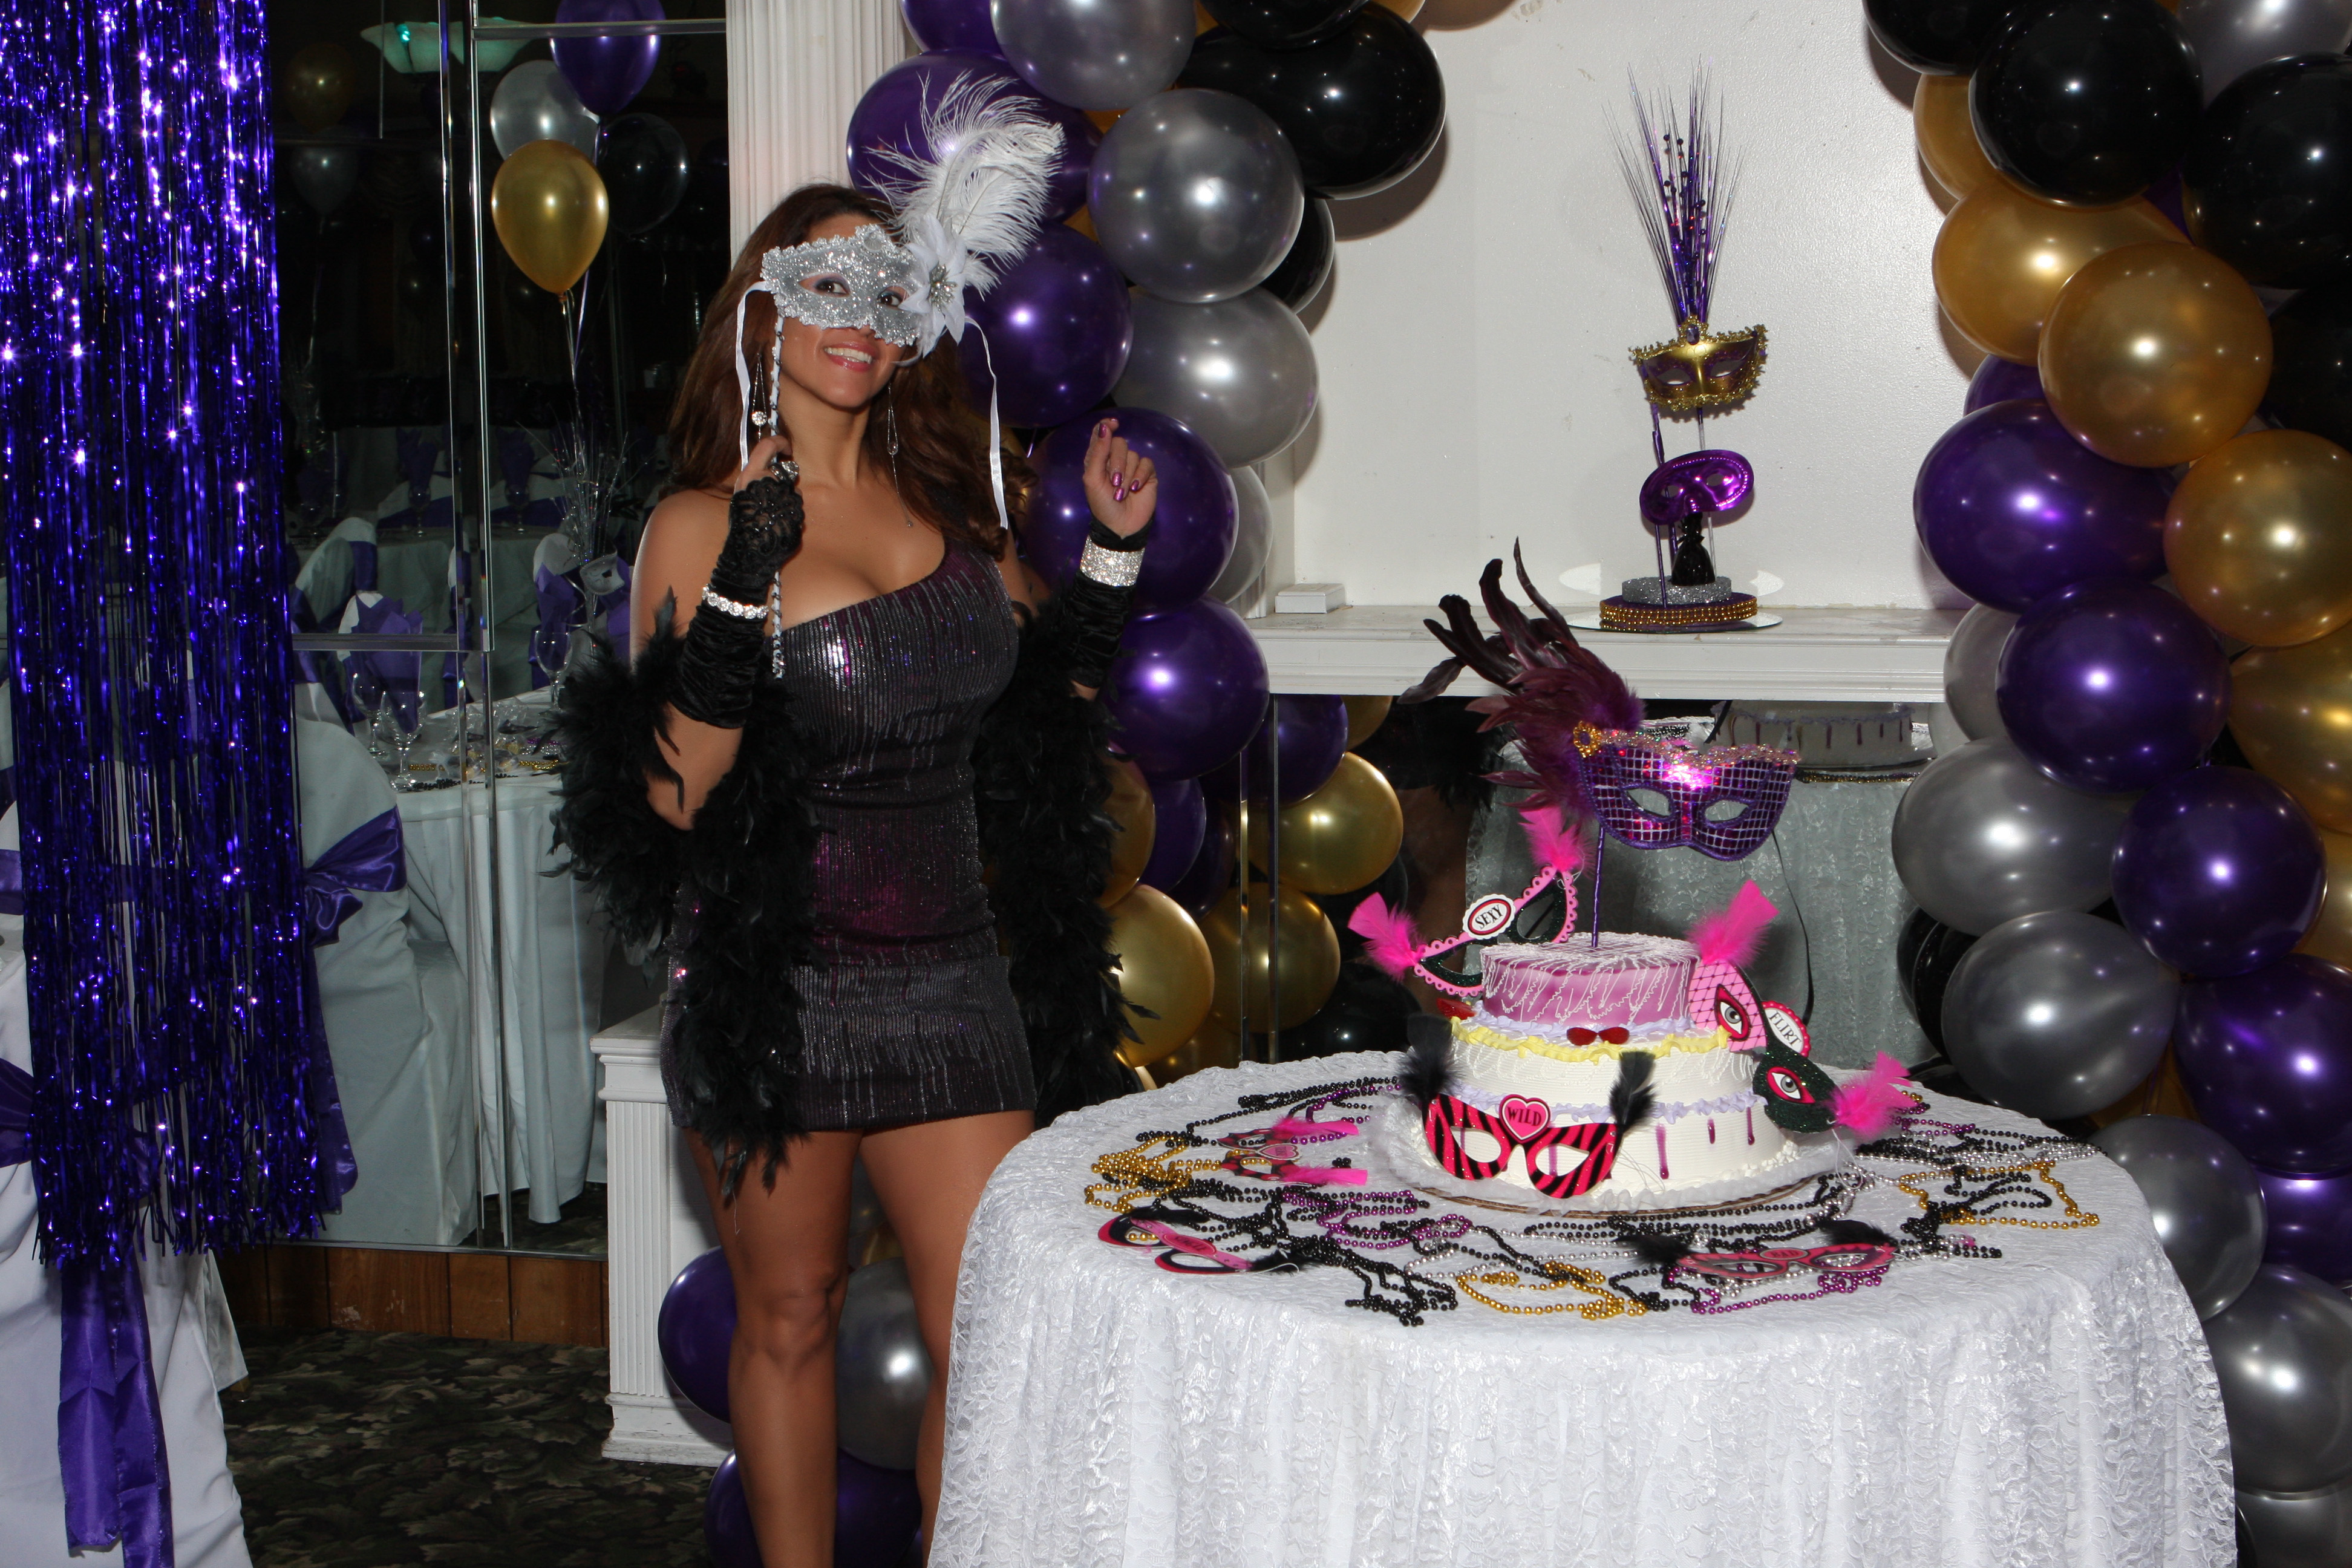 Masquerade birthday party at cesar hall 3 3 12 suheil for 21st birthday hall decoration ideas